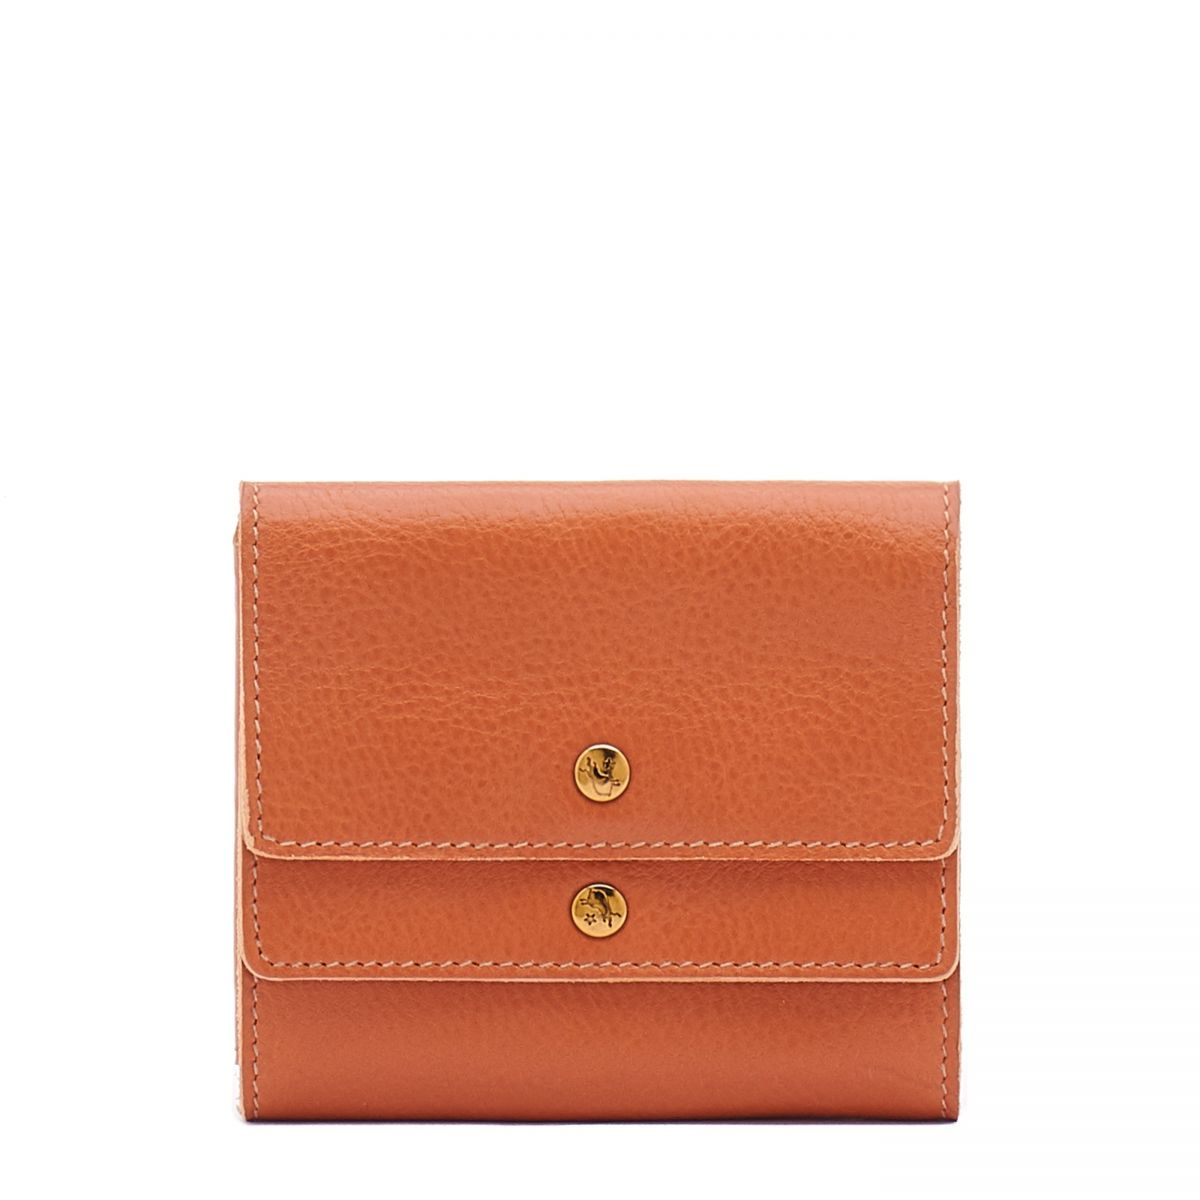 Women's Wallet  in Cowhide Leather SMW107 color Caramel | Details